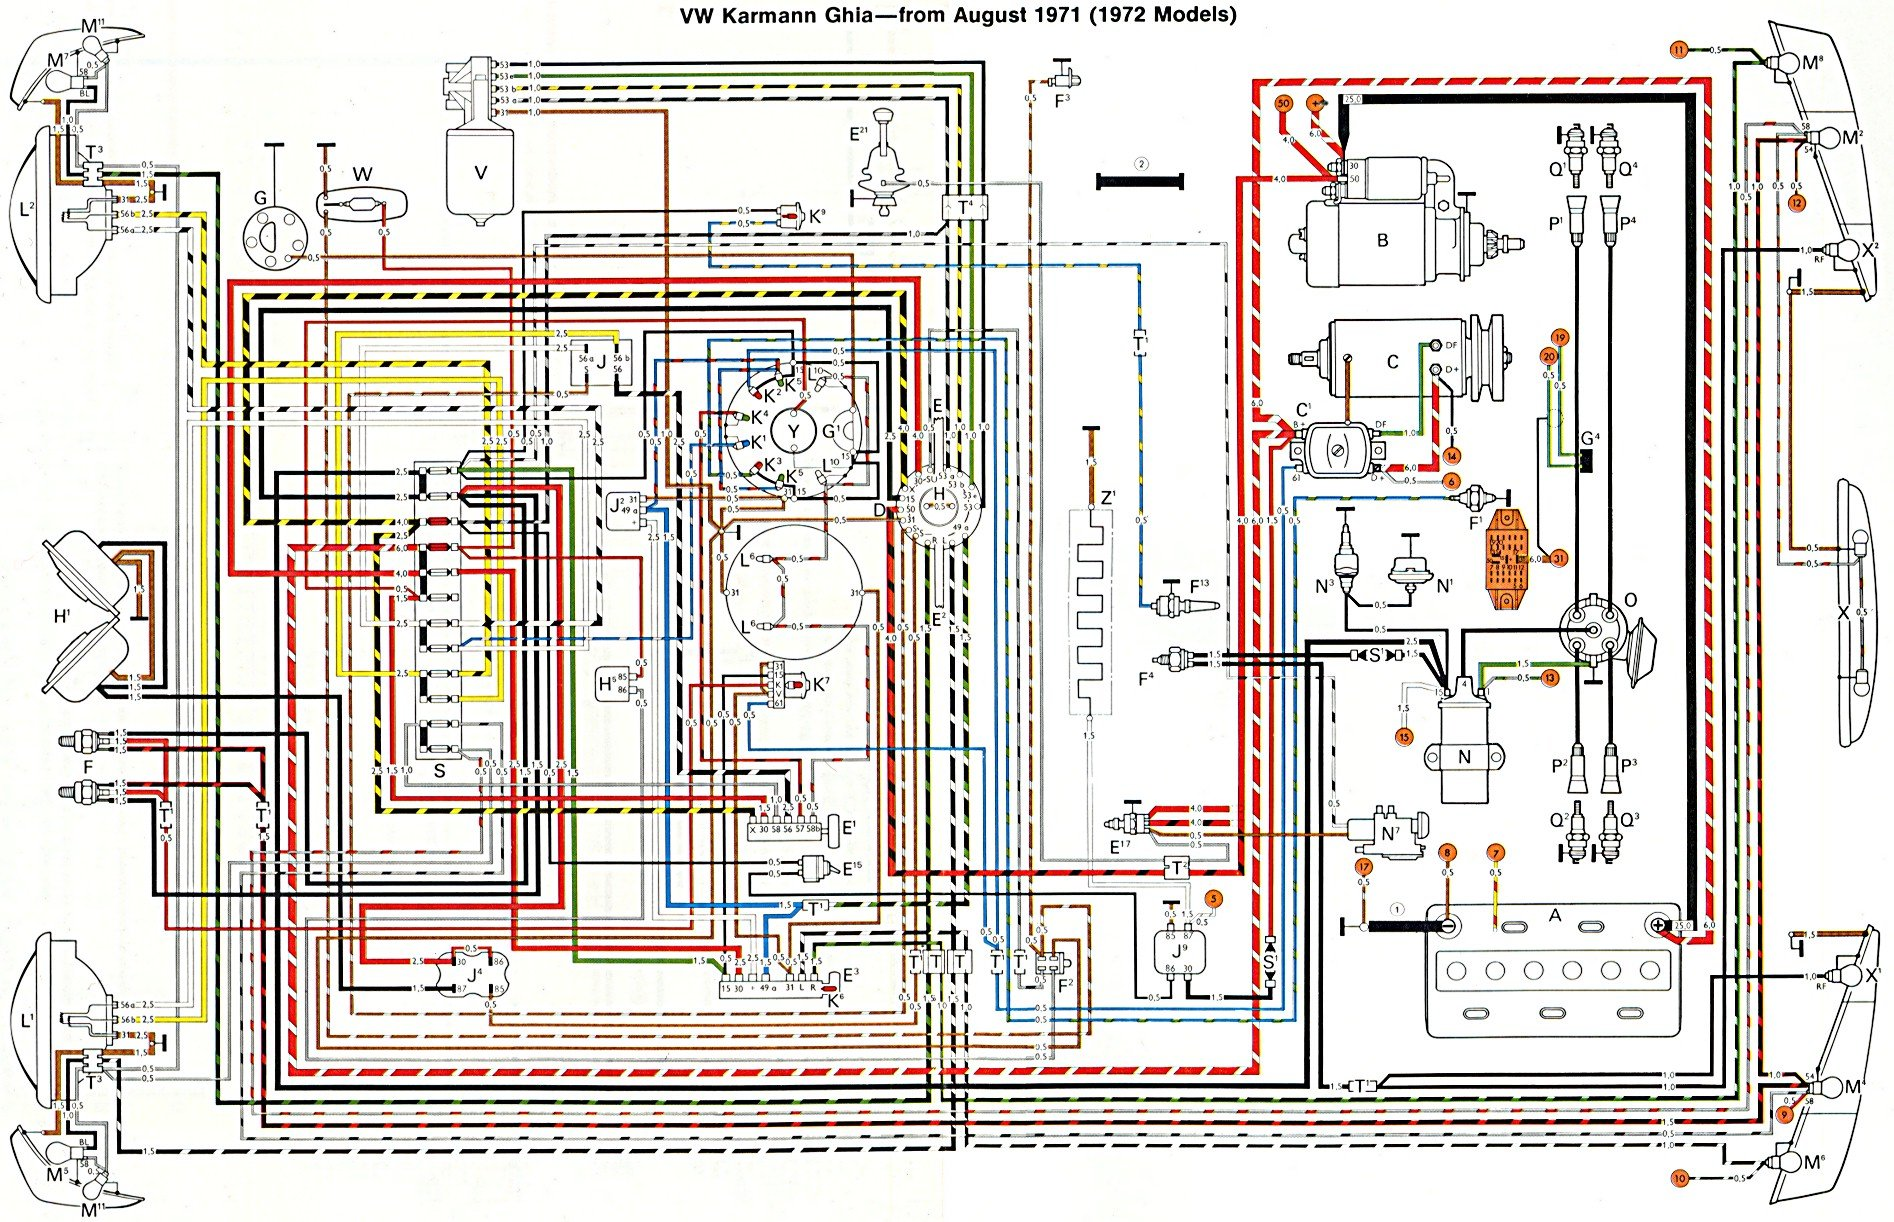 1974 vw karmann ghia wiring diagram thesamba.com :: karmann ghia wiring diagrams 1967 vw karmann ghia wiring diagram